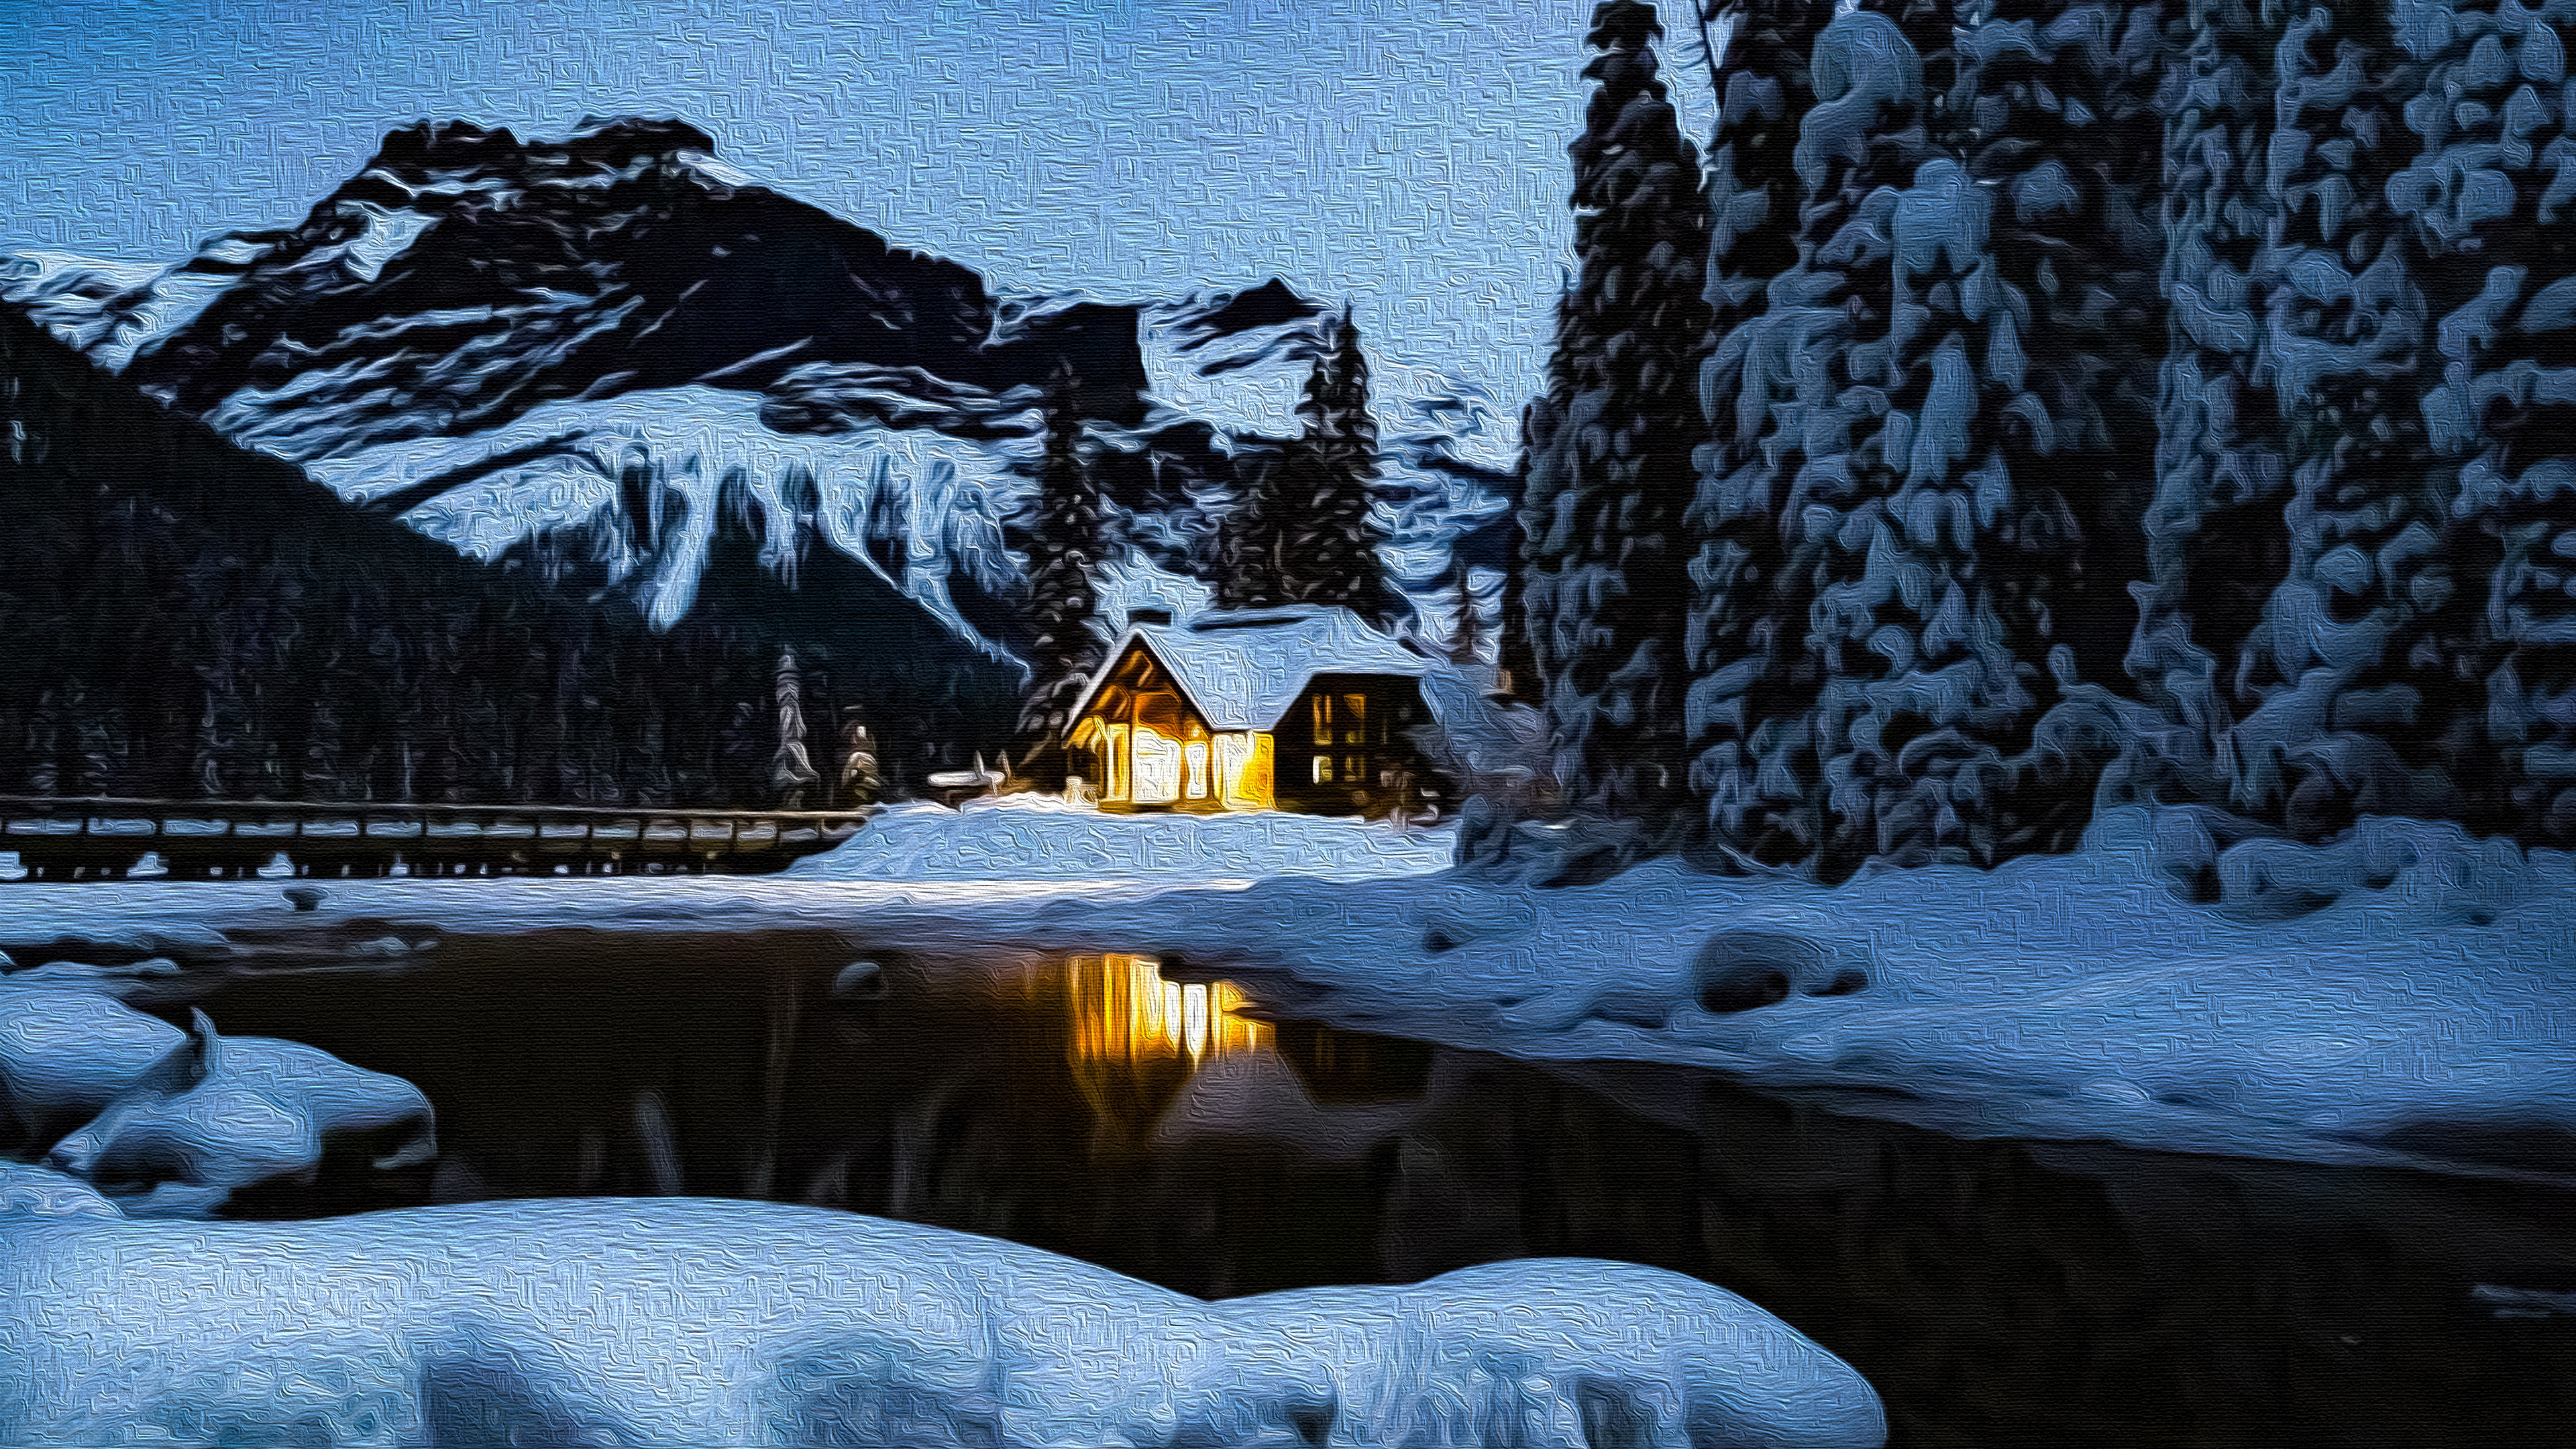 Winter Cabin Oil On Canvas 4k Ultra Hd Wallpaper Background Image 3840x2160 Id 934369 Wallpaper Abyss